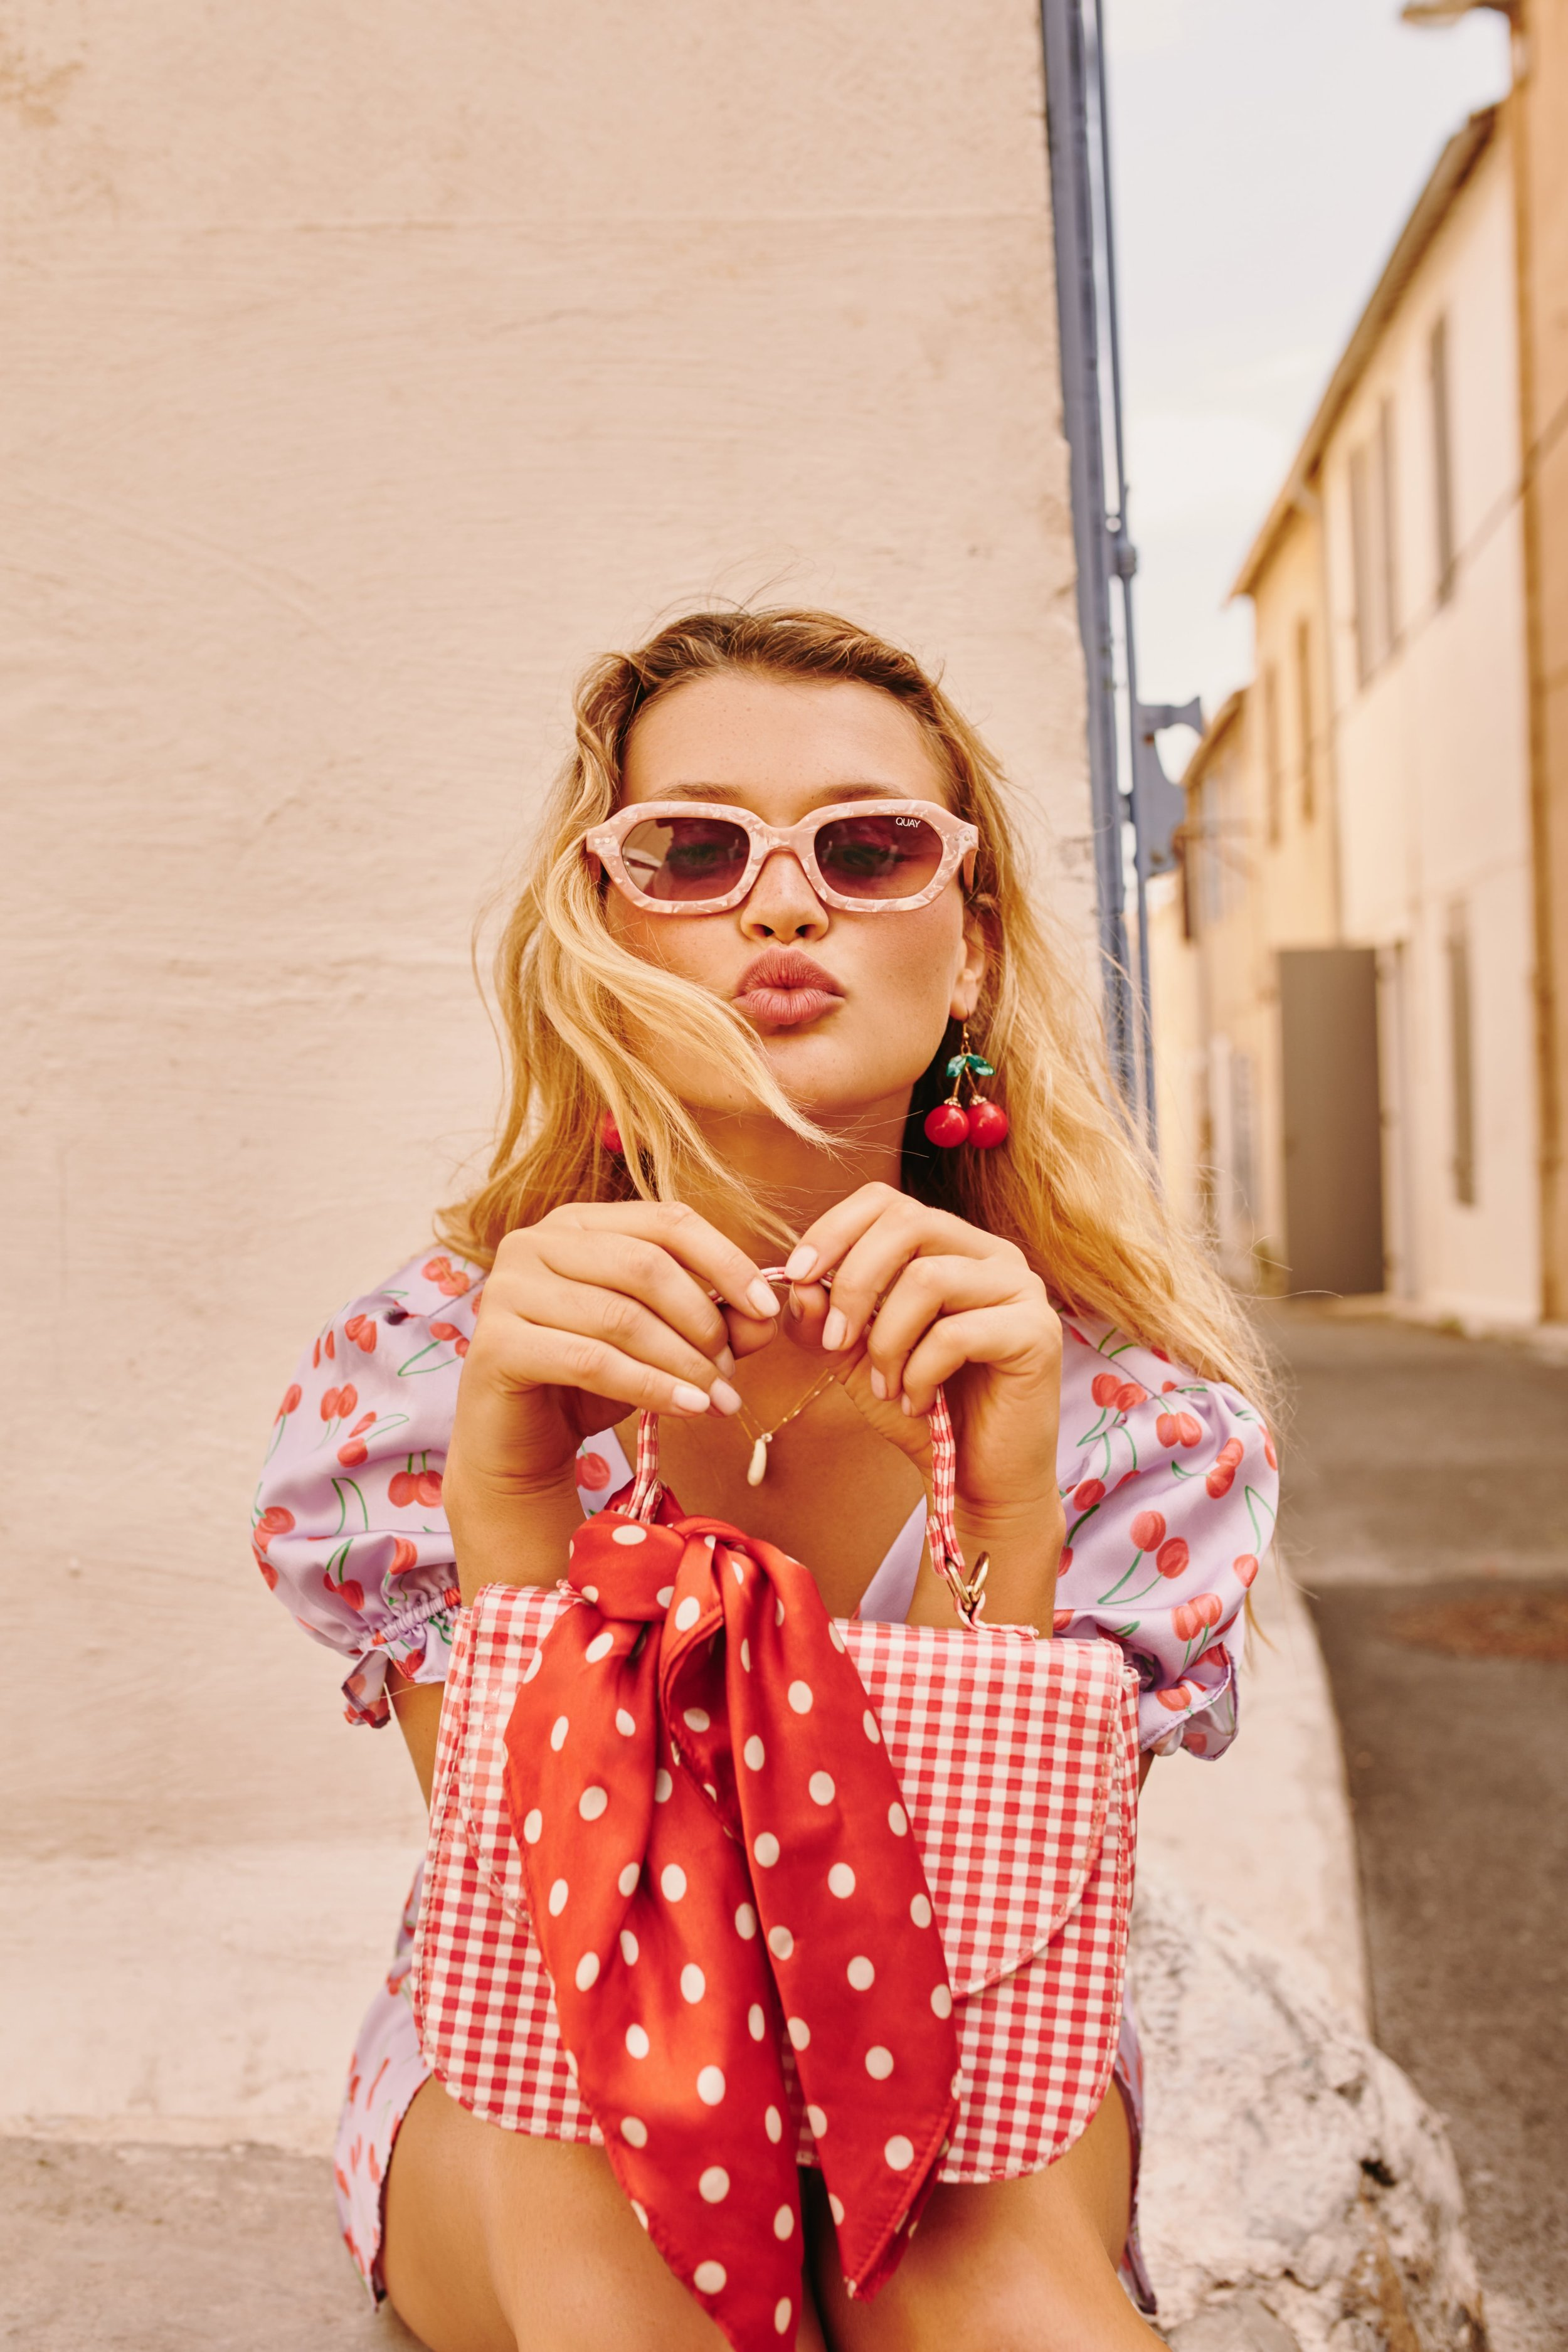 Shop QUAY x Finders Keepers Anything Goes sunglasses.